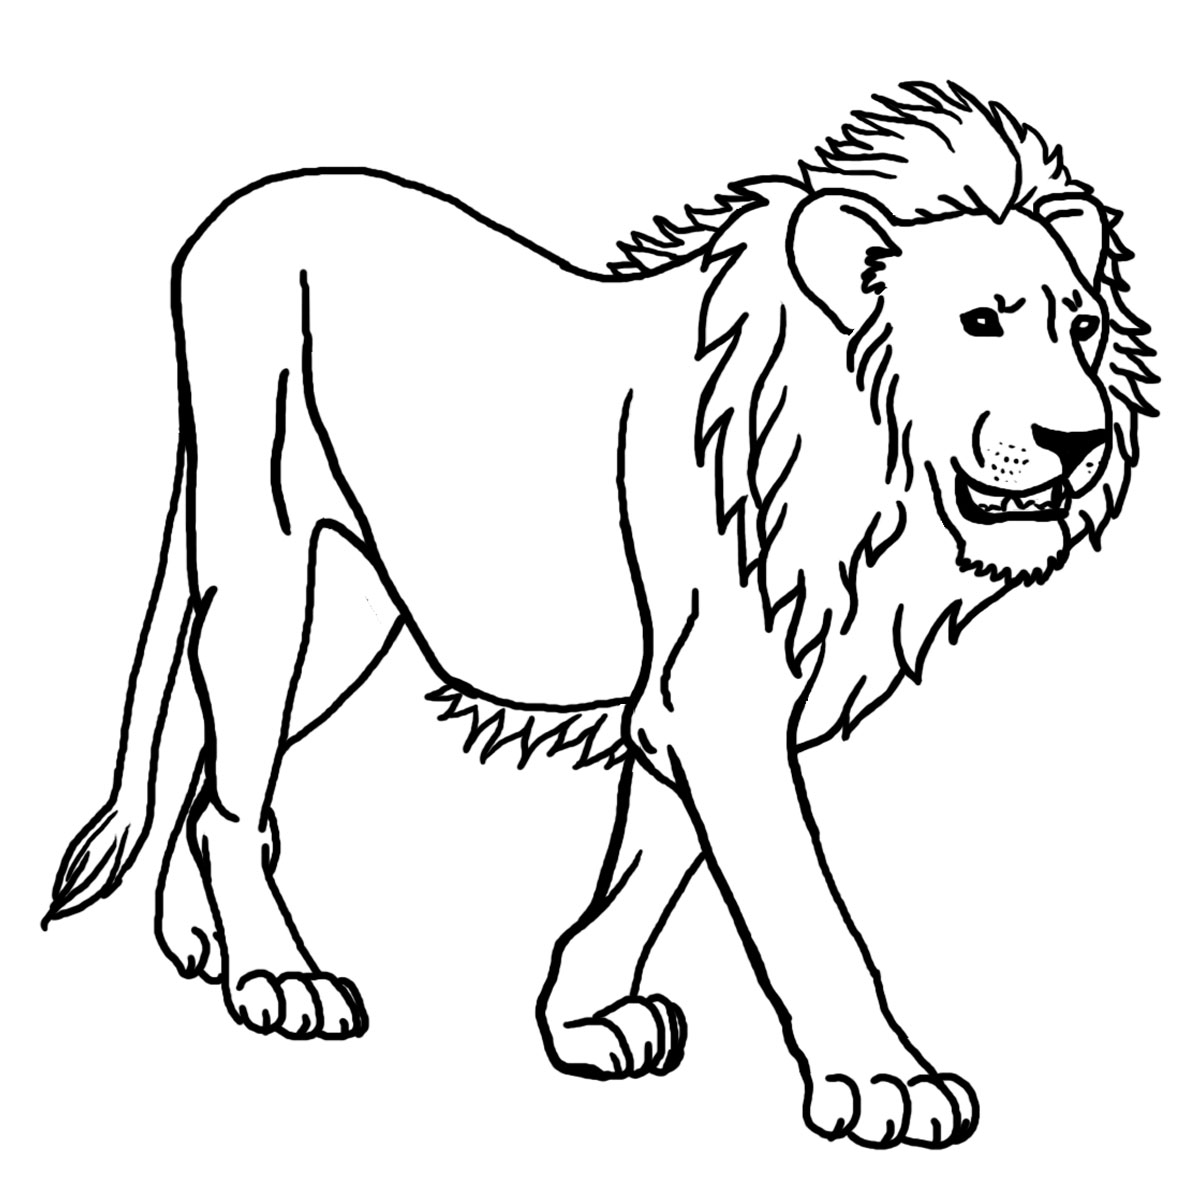 coloring lion color fantasy lion printable adult coloring page from favoreads coloring color lion